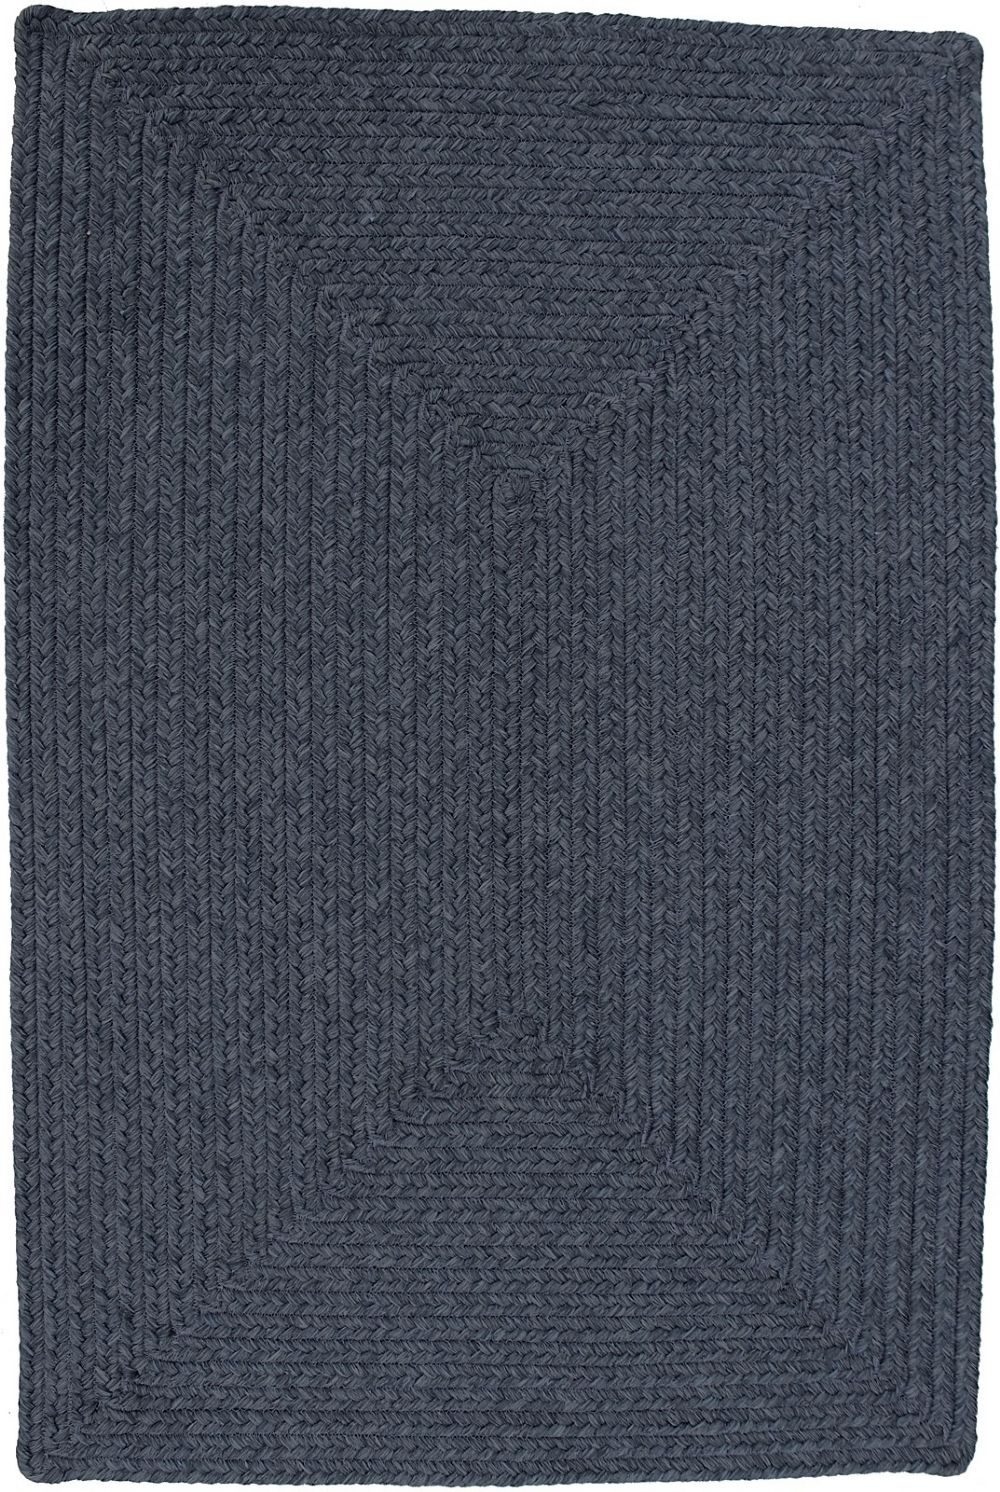 homespice decor azure braided area rug collection